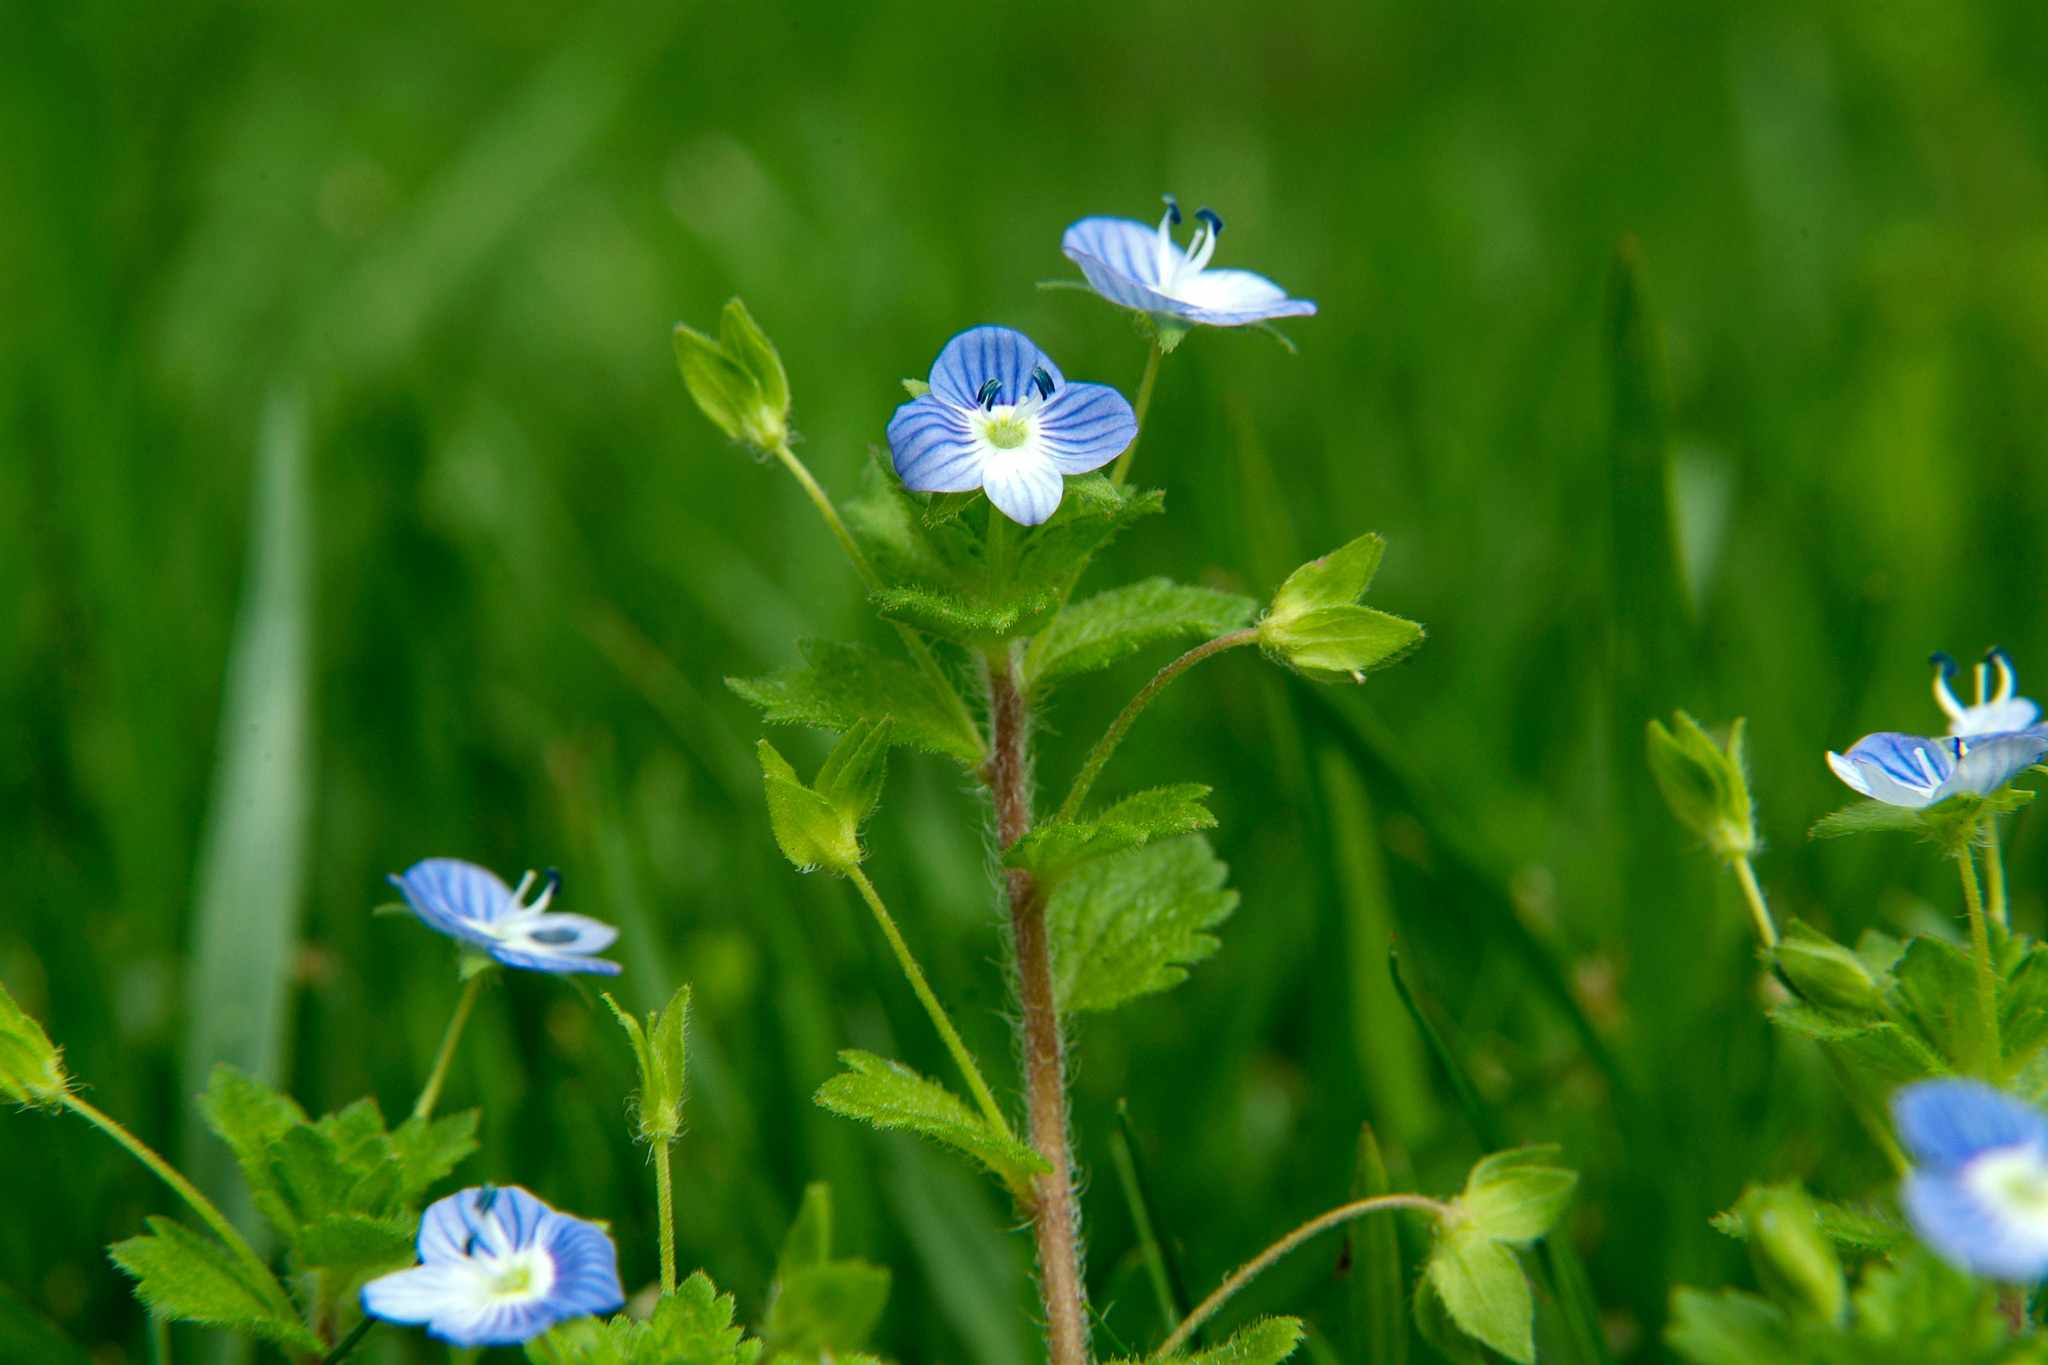 Tiny blue flowers of speedwell